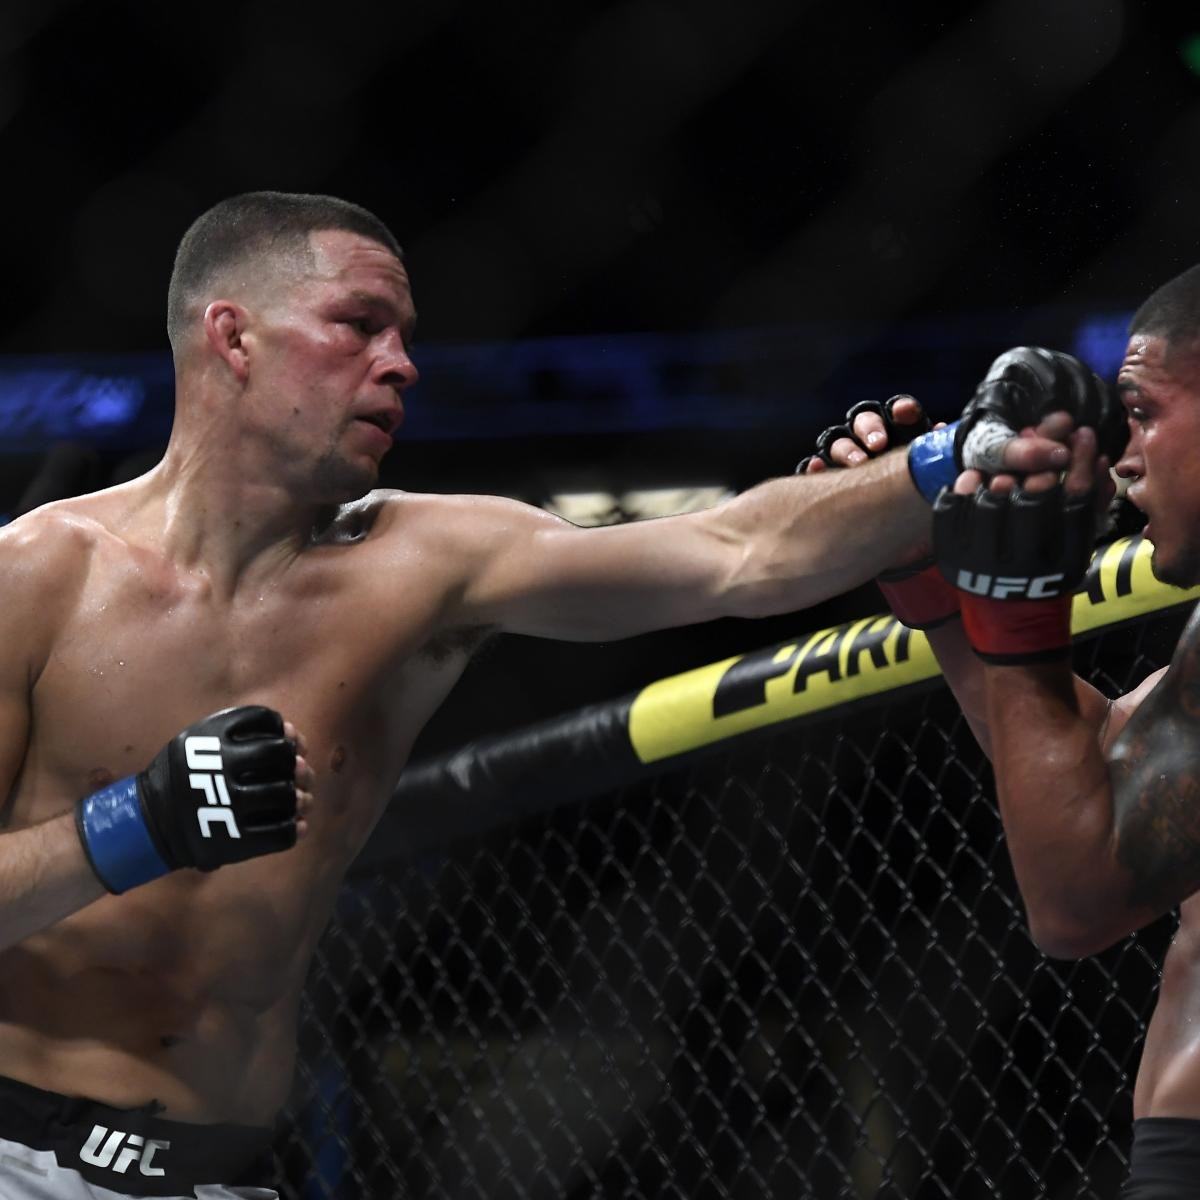 Nate Diaz Displays What the UFC Has Been Missing in Win over Anthony Pettis | Bleacher Report | Latest News, Videos and Highlights